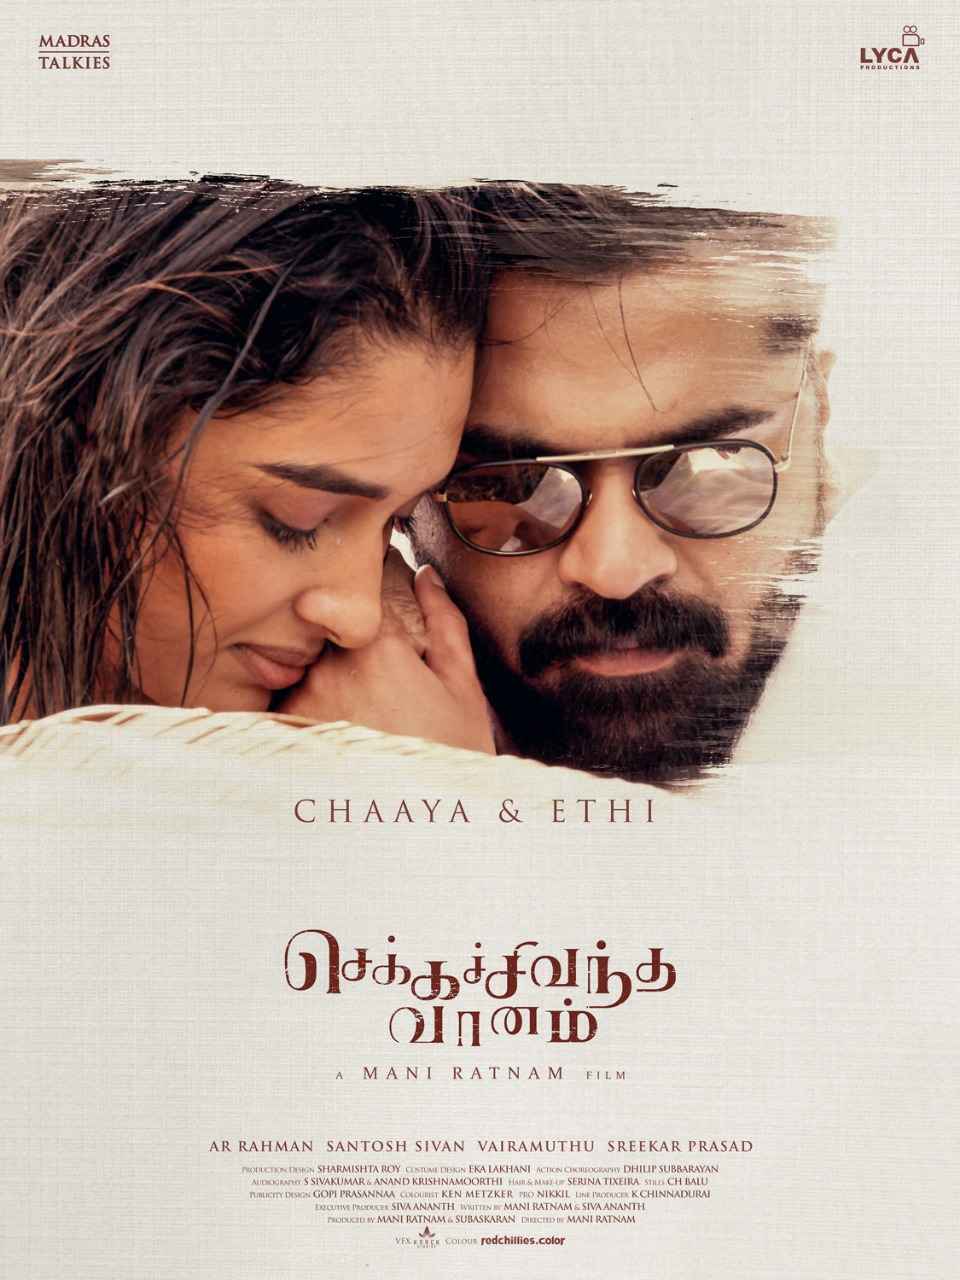 STR Simbu and Dayana Erappa in Chekka Chivantha Vaanam